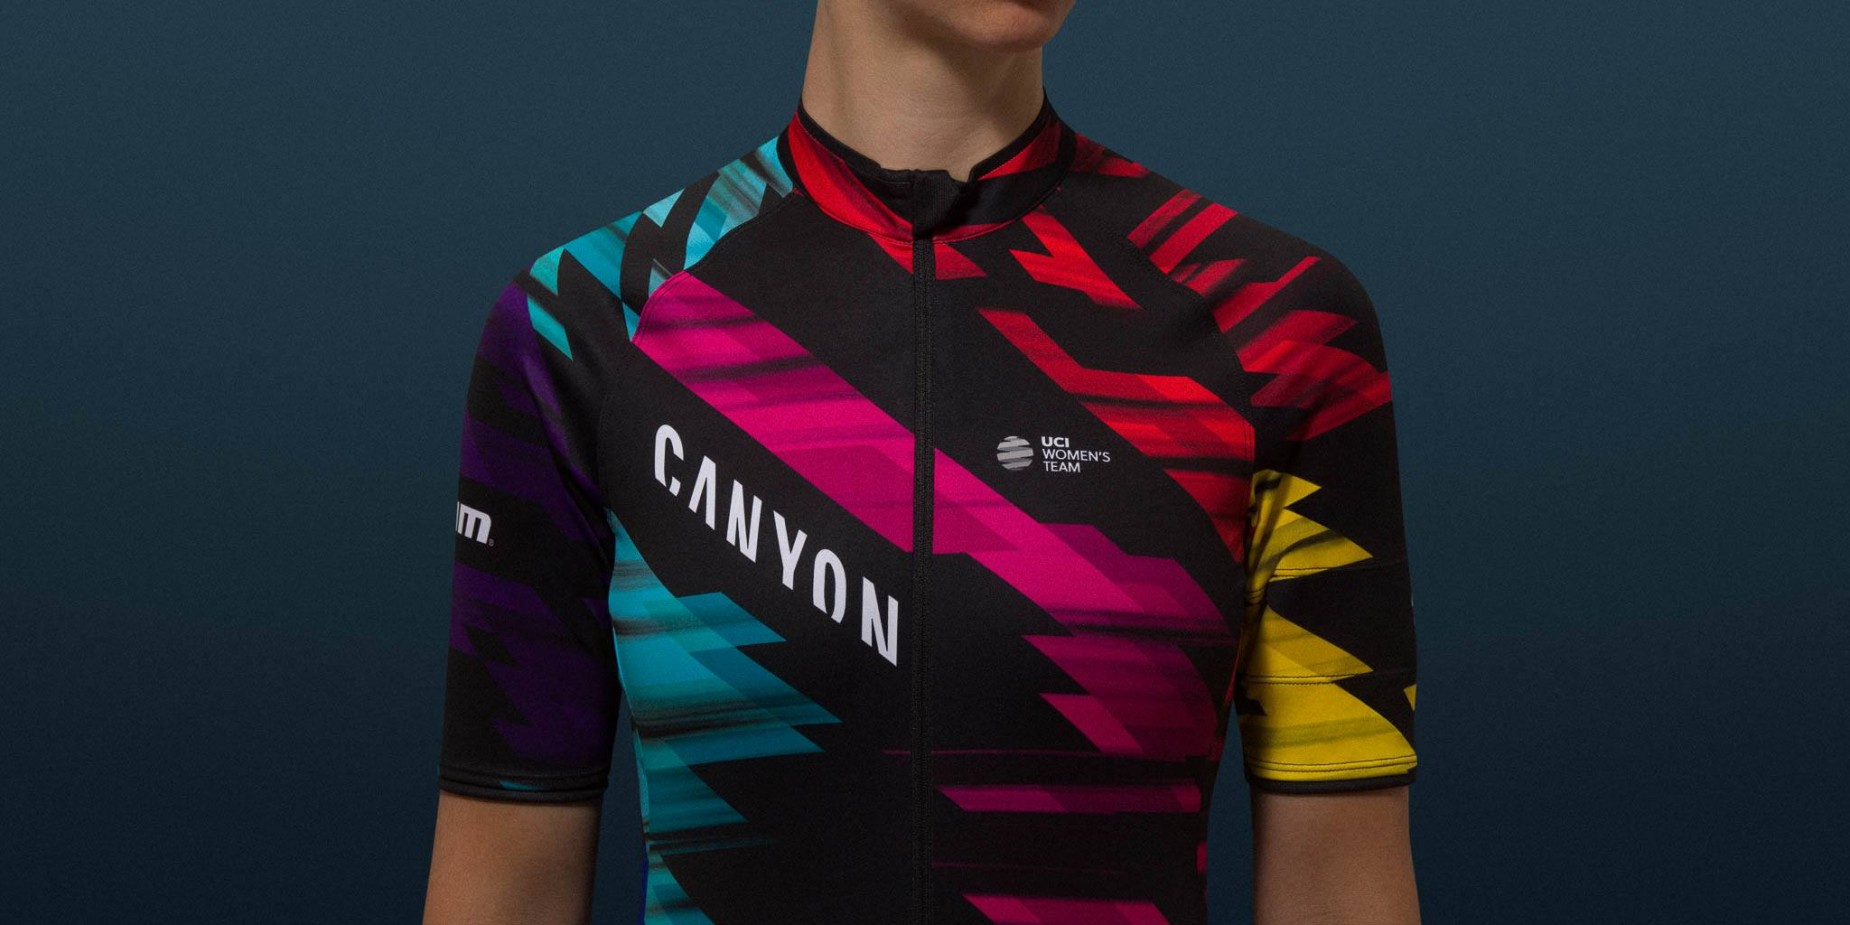 cd4a10596 Rapha s striking Canyon  SRAM racing kit now available for men